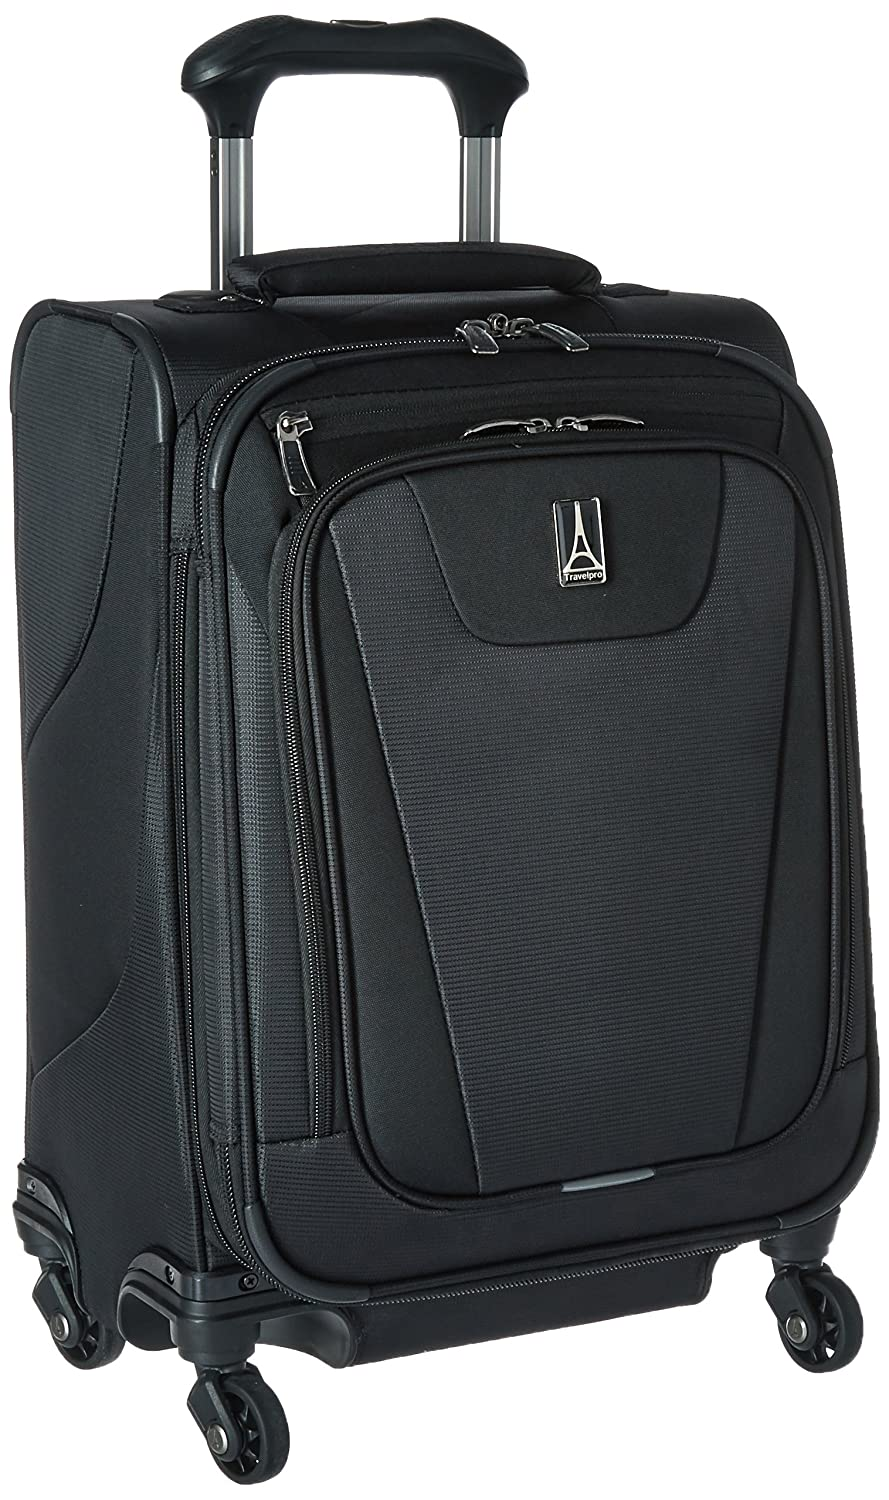 Travelpro Maxlite 4 International Carry-On Spinner Suitcase, Black Travelpro International Inc. 401156001